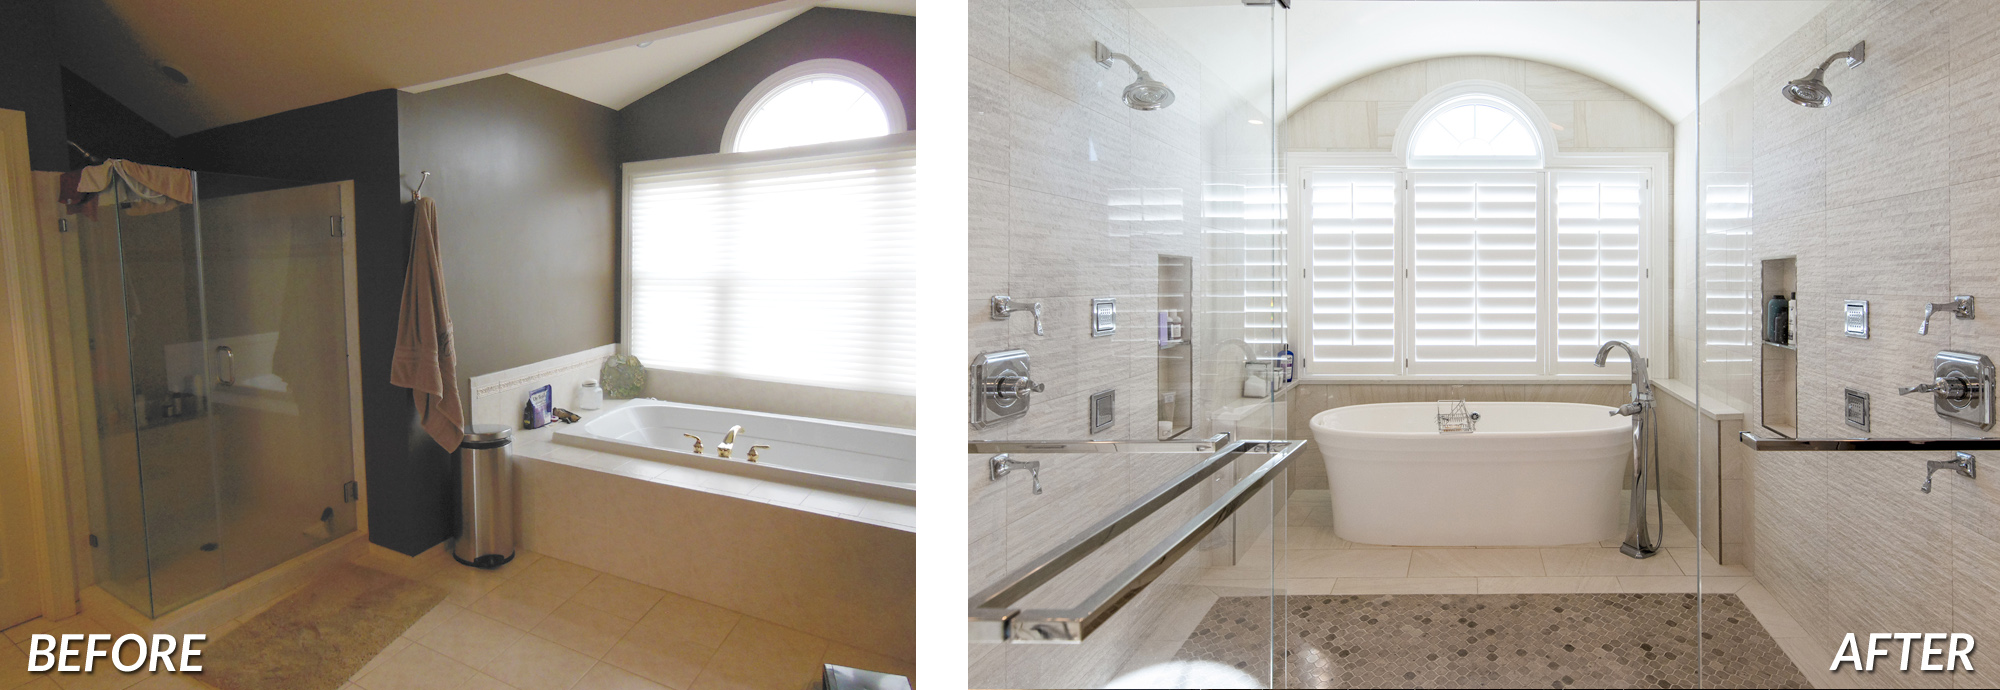 Leesburg Master Bath Renovation Before & After